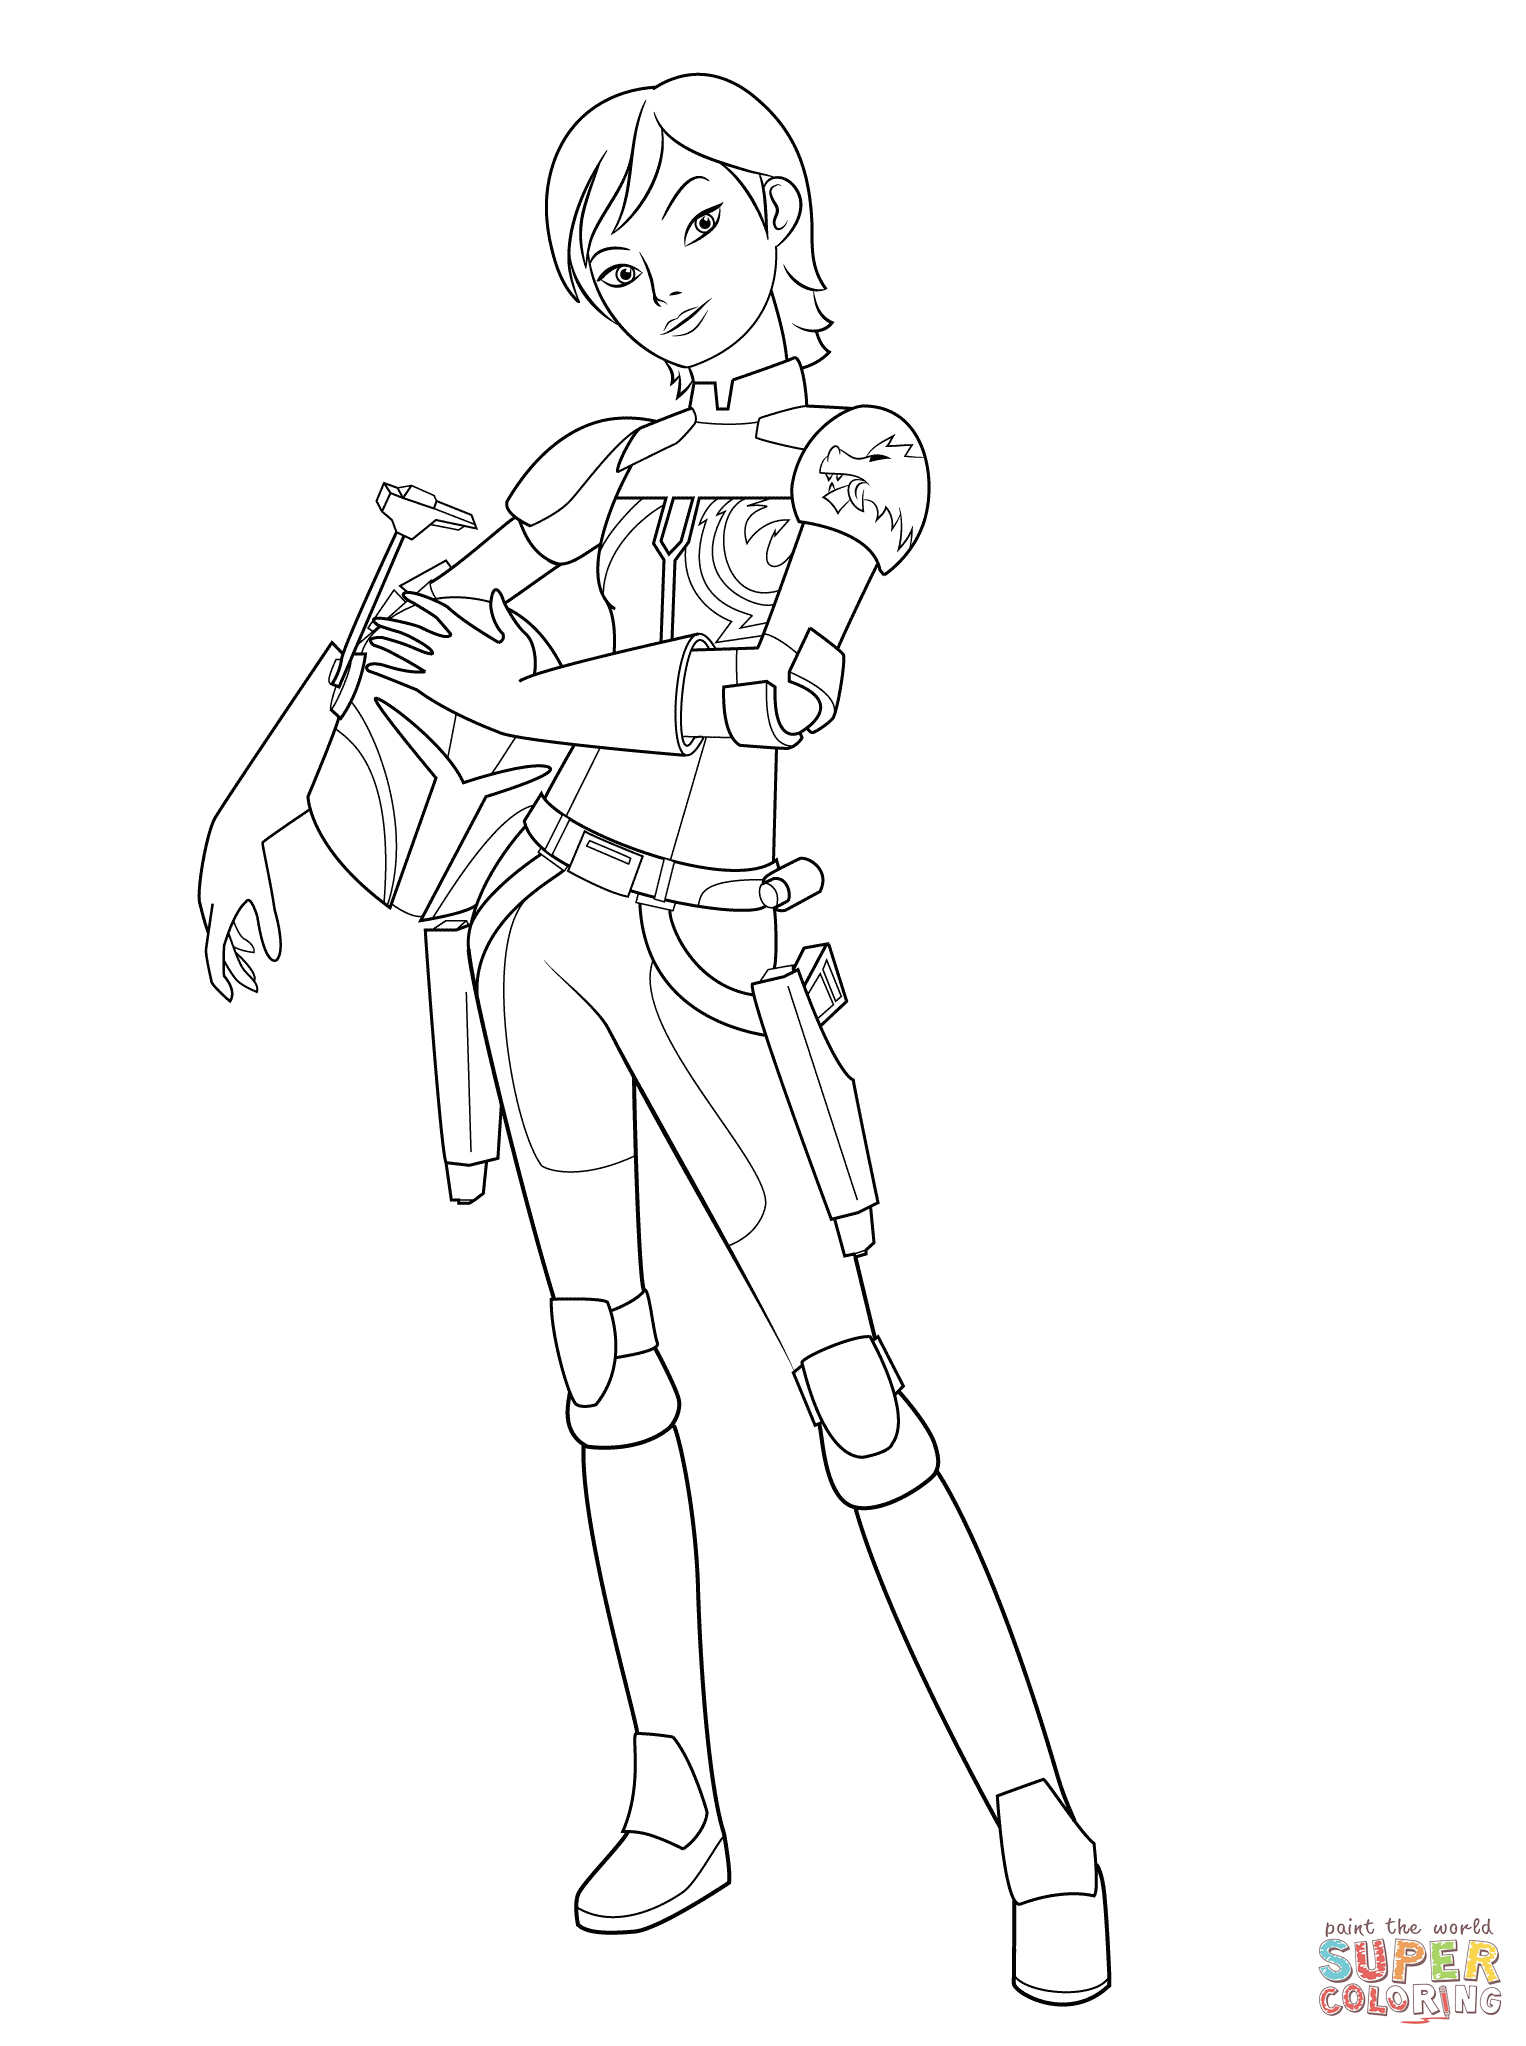 star wars sabine coloring pages you might also be interested in coloring pages from - Star Wars Pictures To Colour In